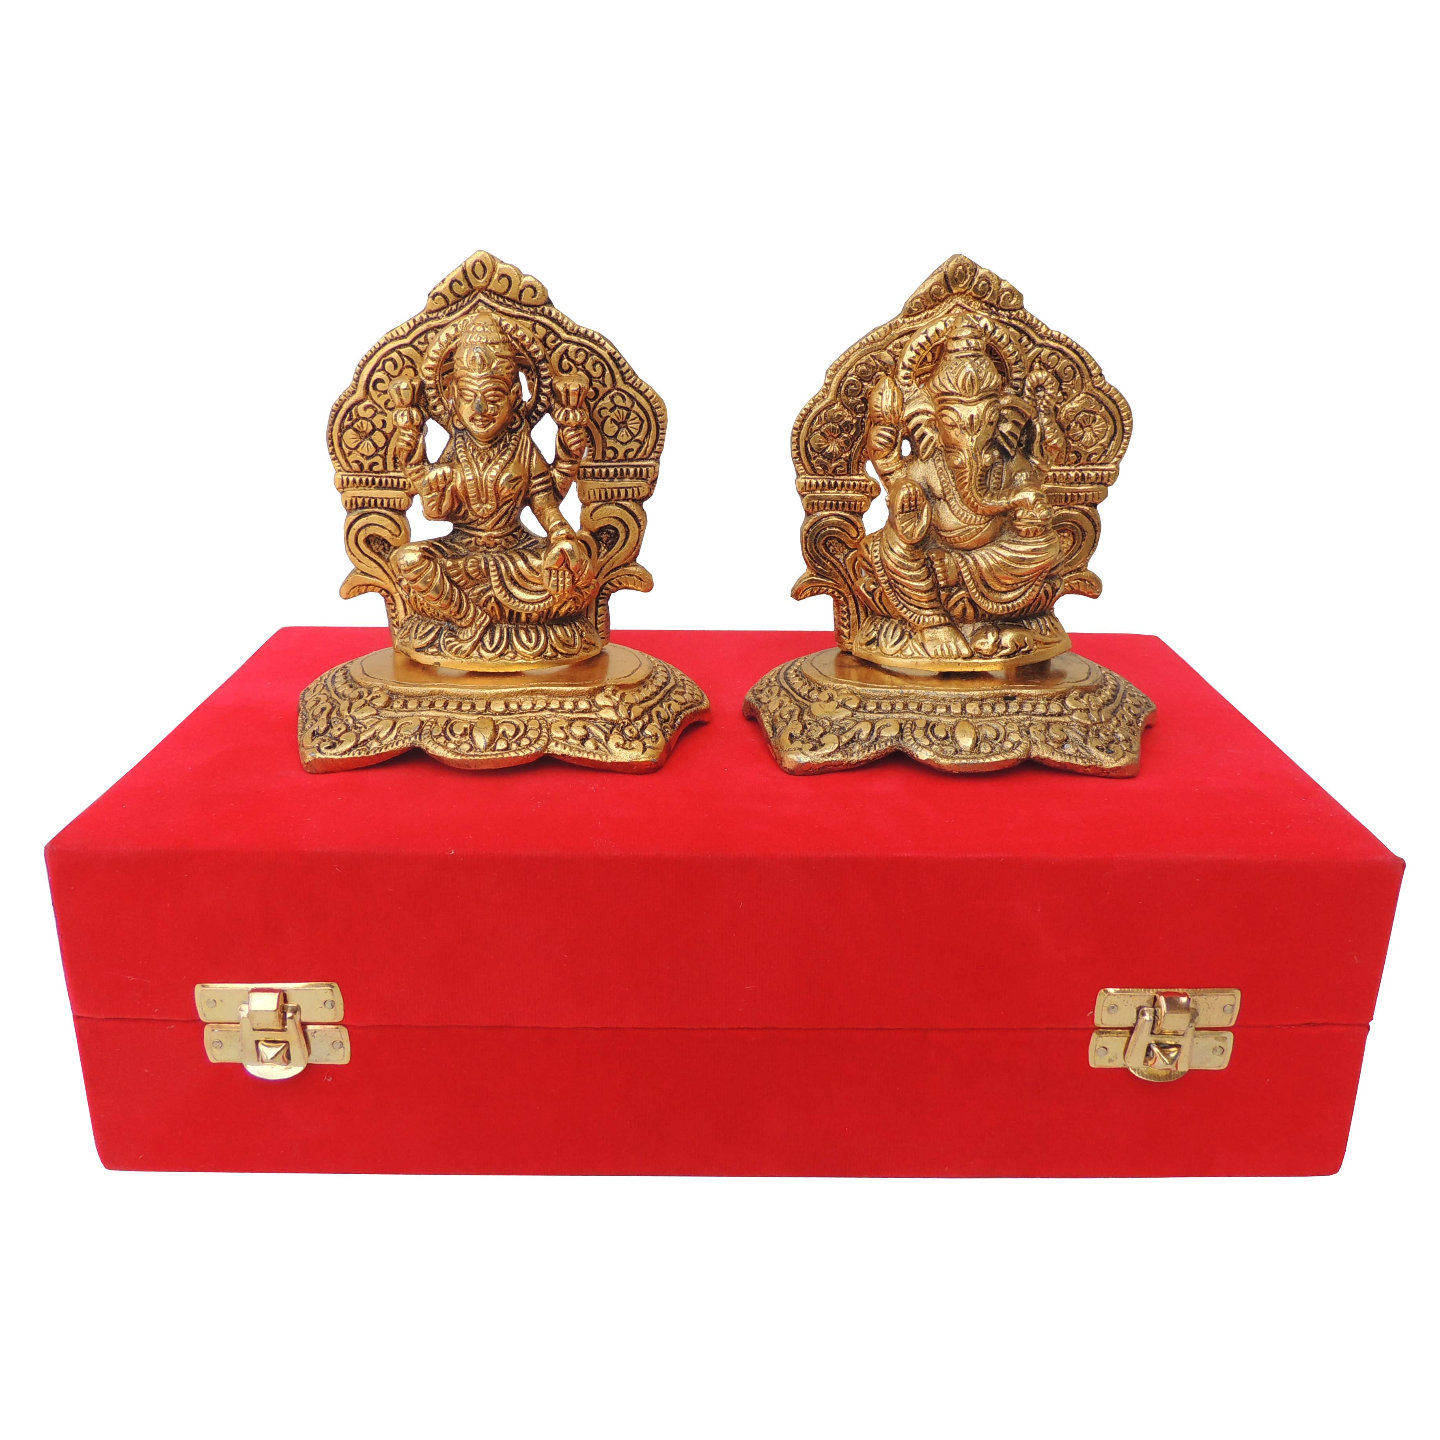 Showpiece Laxmi Ganesh With Golden Finish - 4.8 Inch (AS379 G)